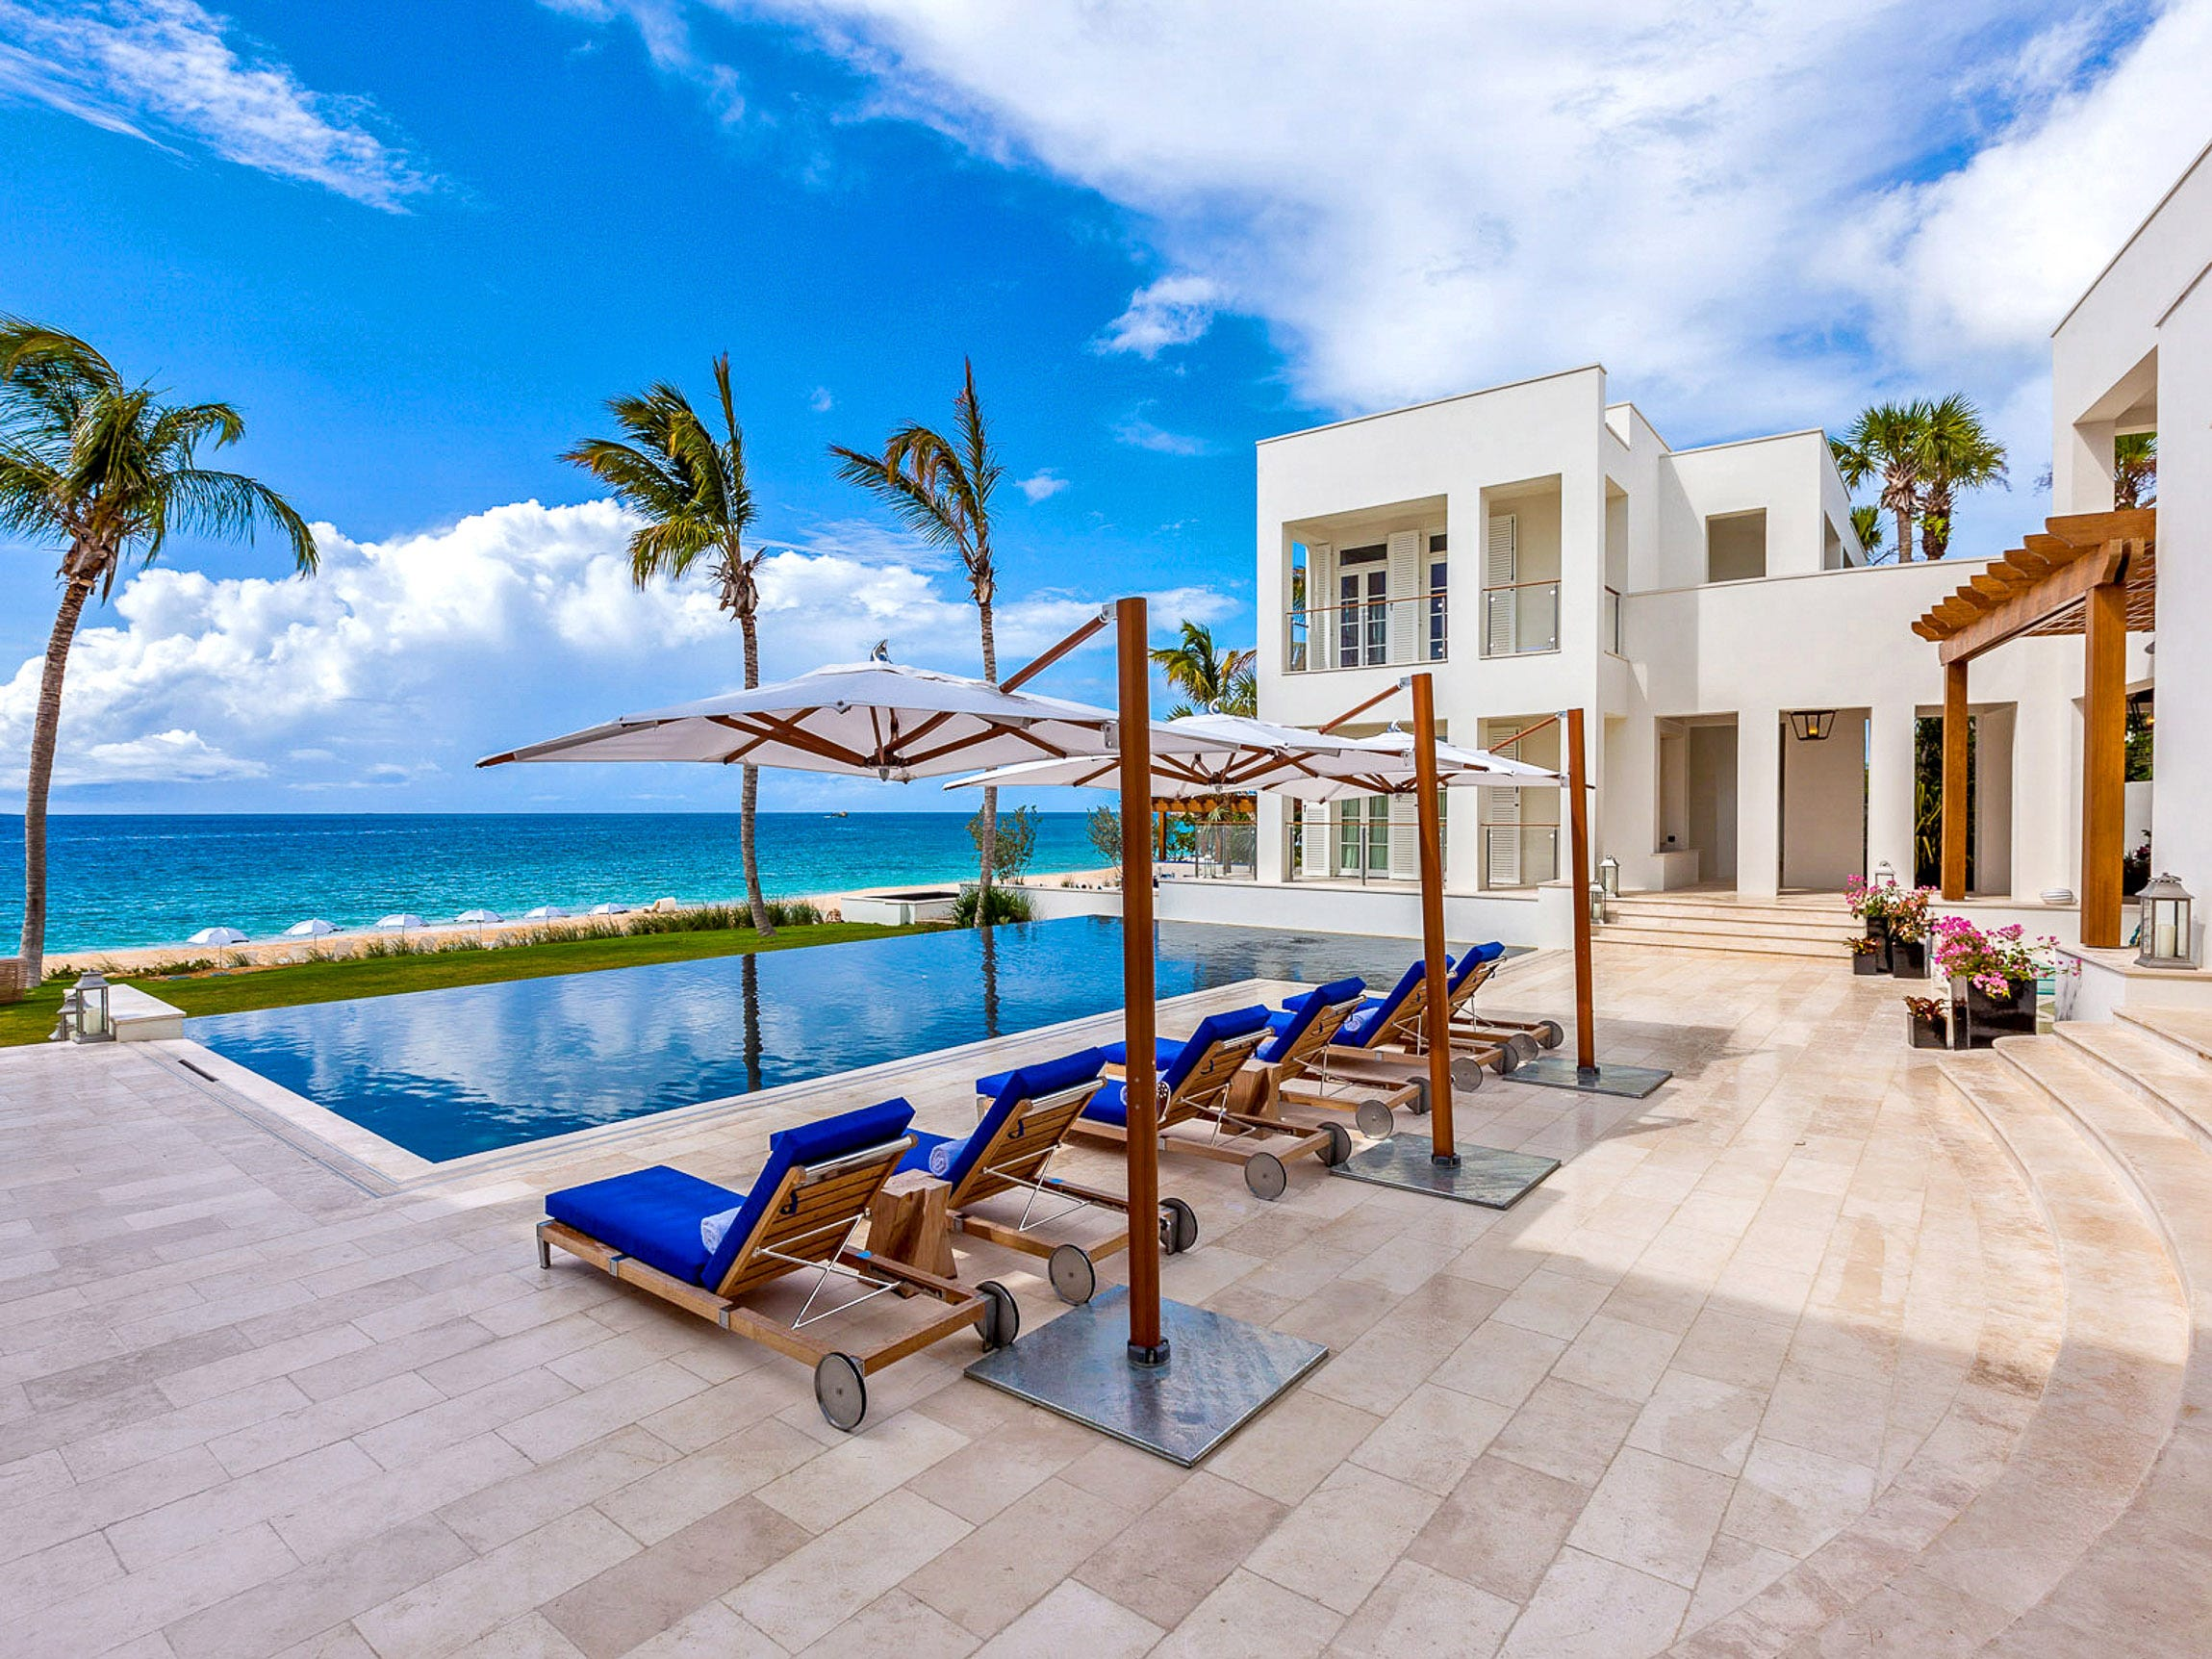 This nine-bedroom property on Barnes Bay in Anguilla sleeps 18 and rents for $14,286 - $30,000 a night.